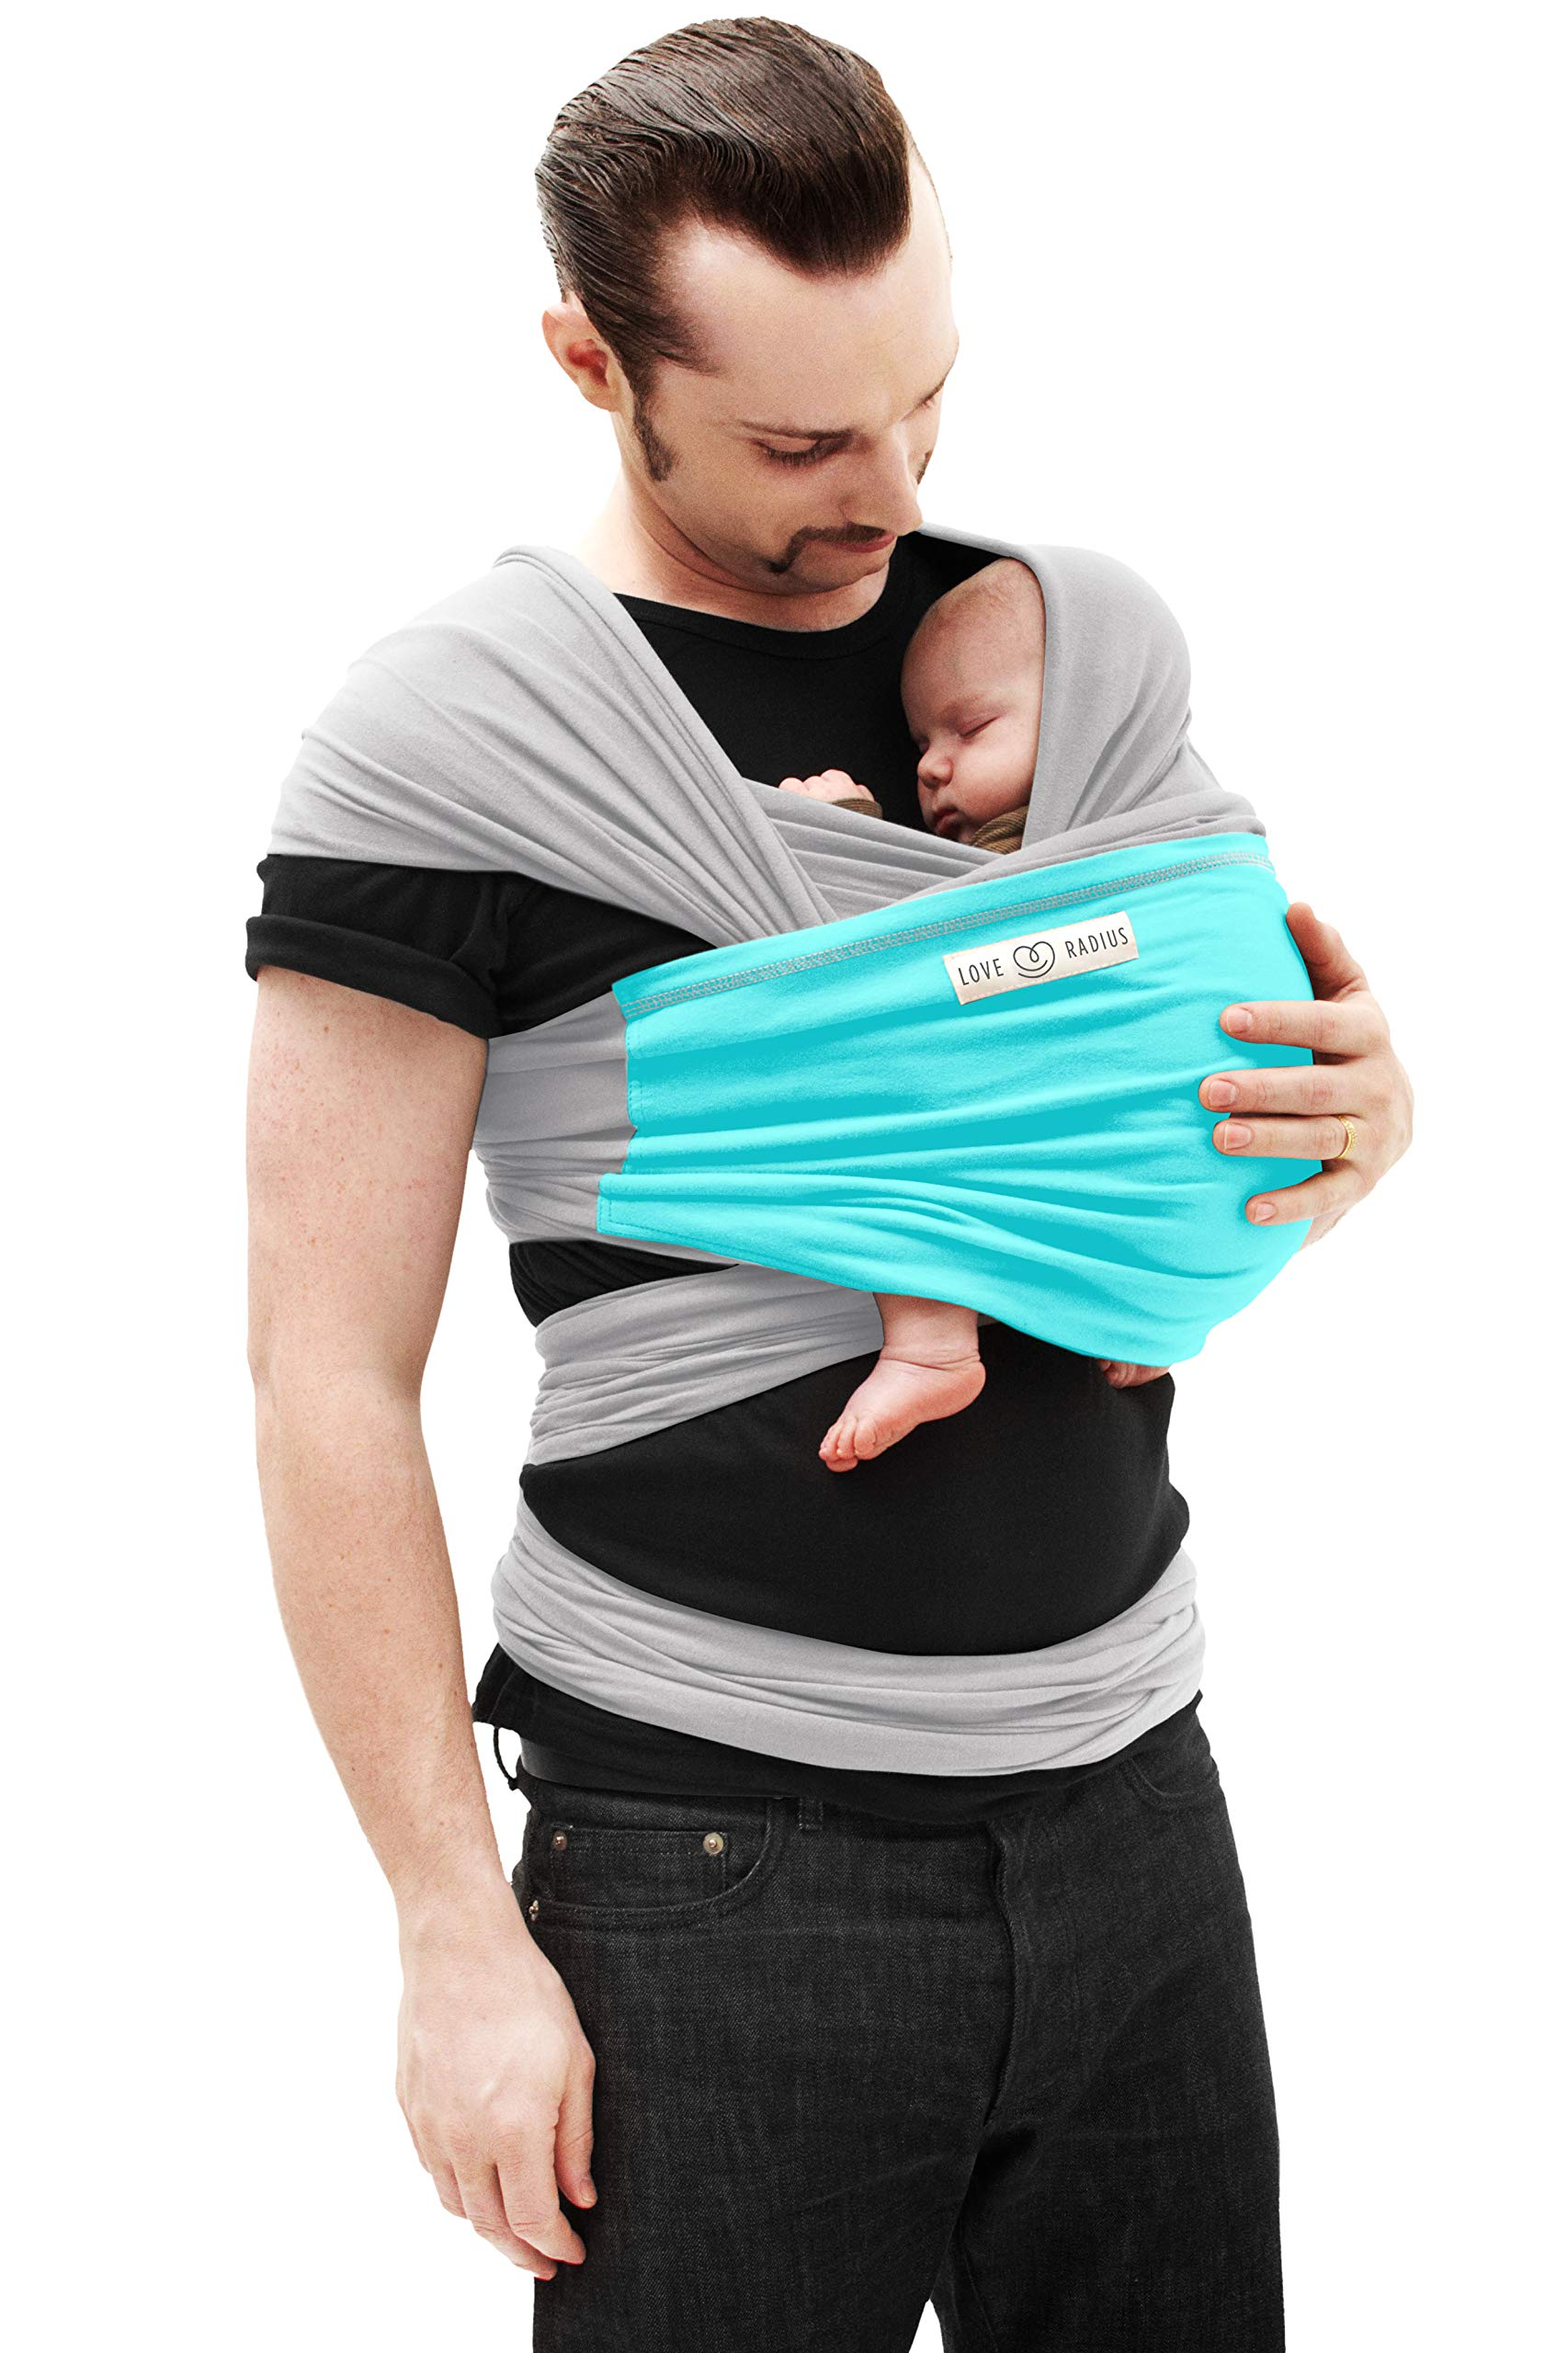 Je Porte Mon Bébé L'Originale Baby Sling Je Porte Mon Bébé High Quality Elastic Baby Carrier Dense, elastic and breathable material Great support, fits your baby's body like a second skin. 33